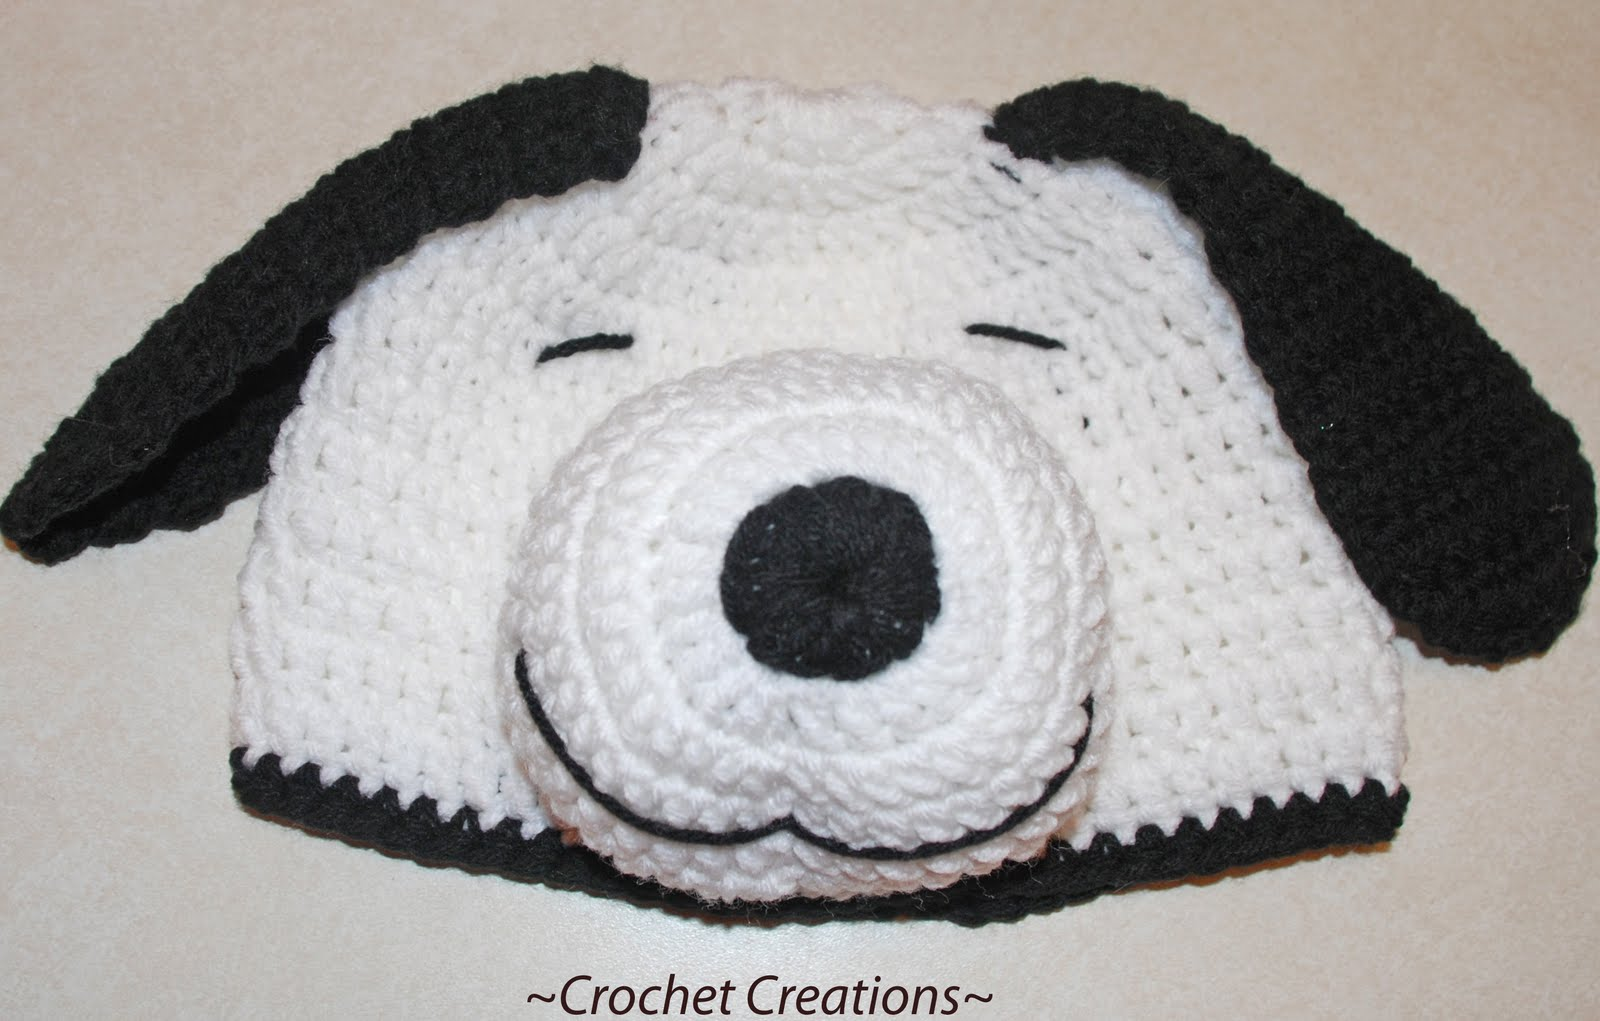 Amigurumi Patterns Snoopy : Snoopy crochet patterns u2013 easy crochet patterns